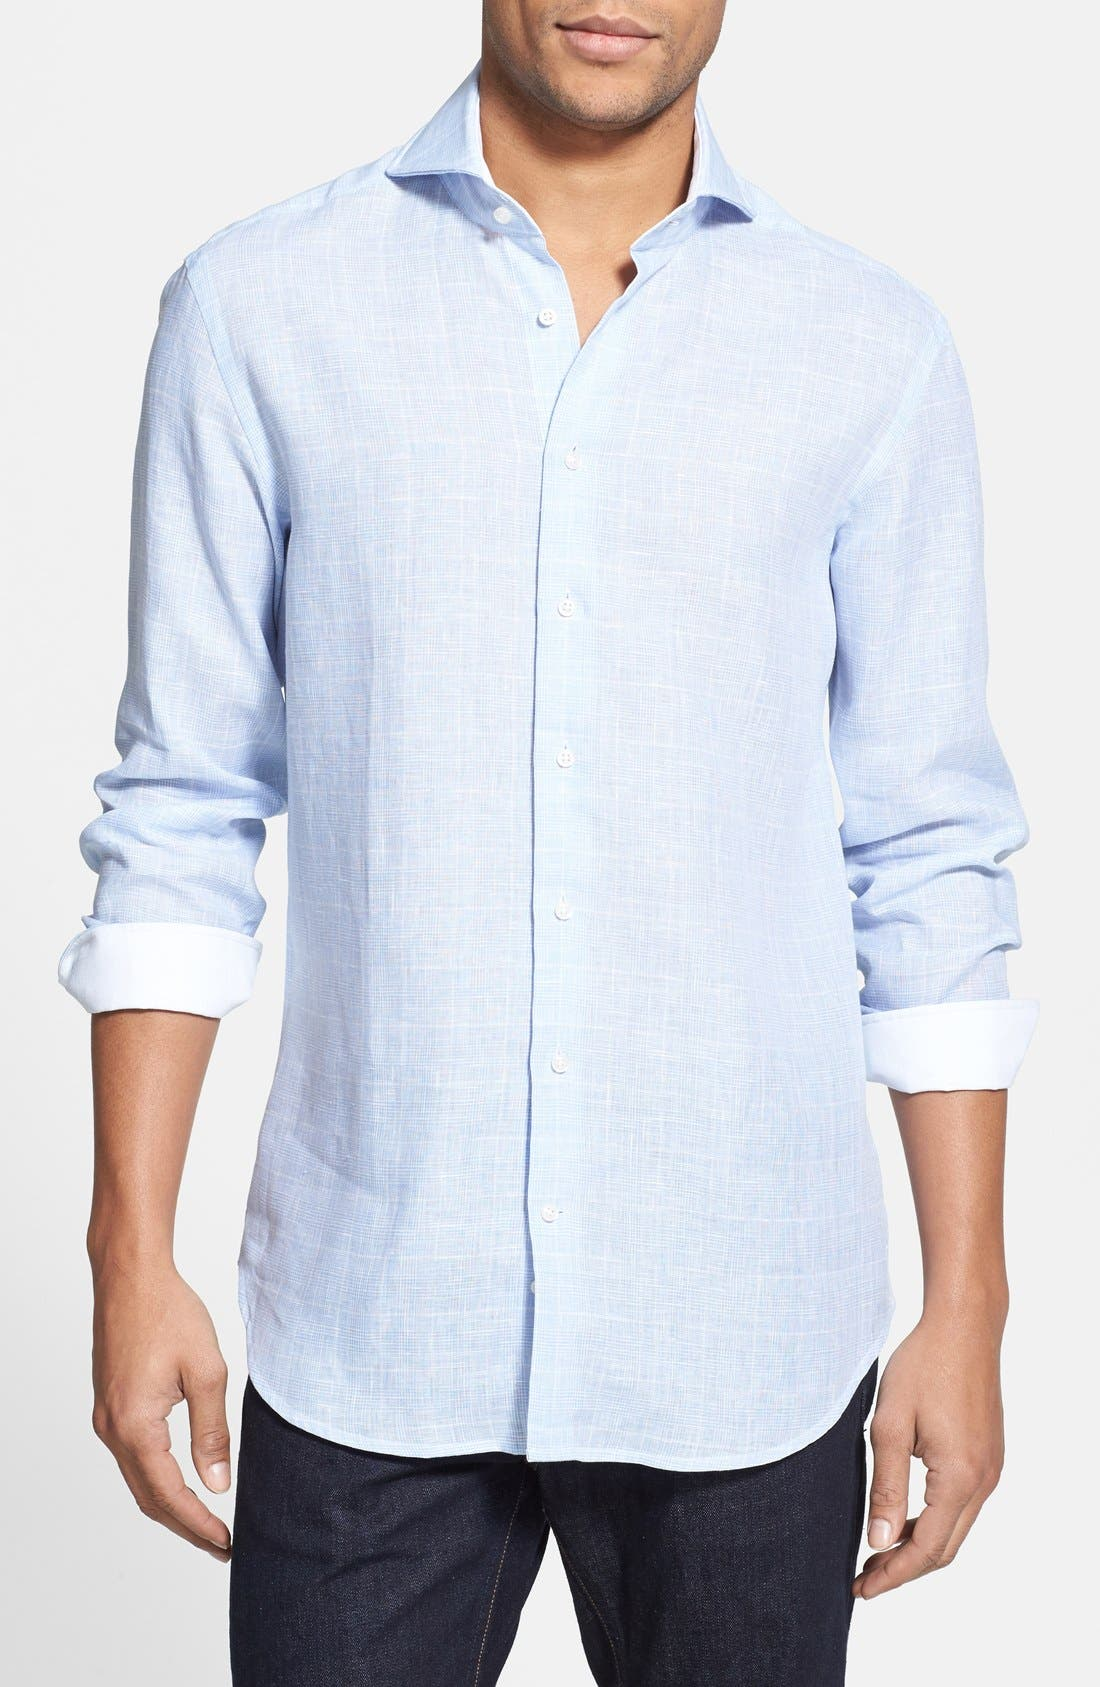 Main Image - Kent and Curwen Trim Fit Prince of Wales Linen Sport Shirt